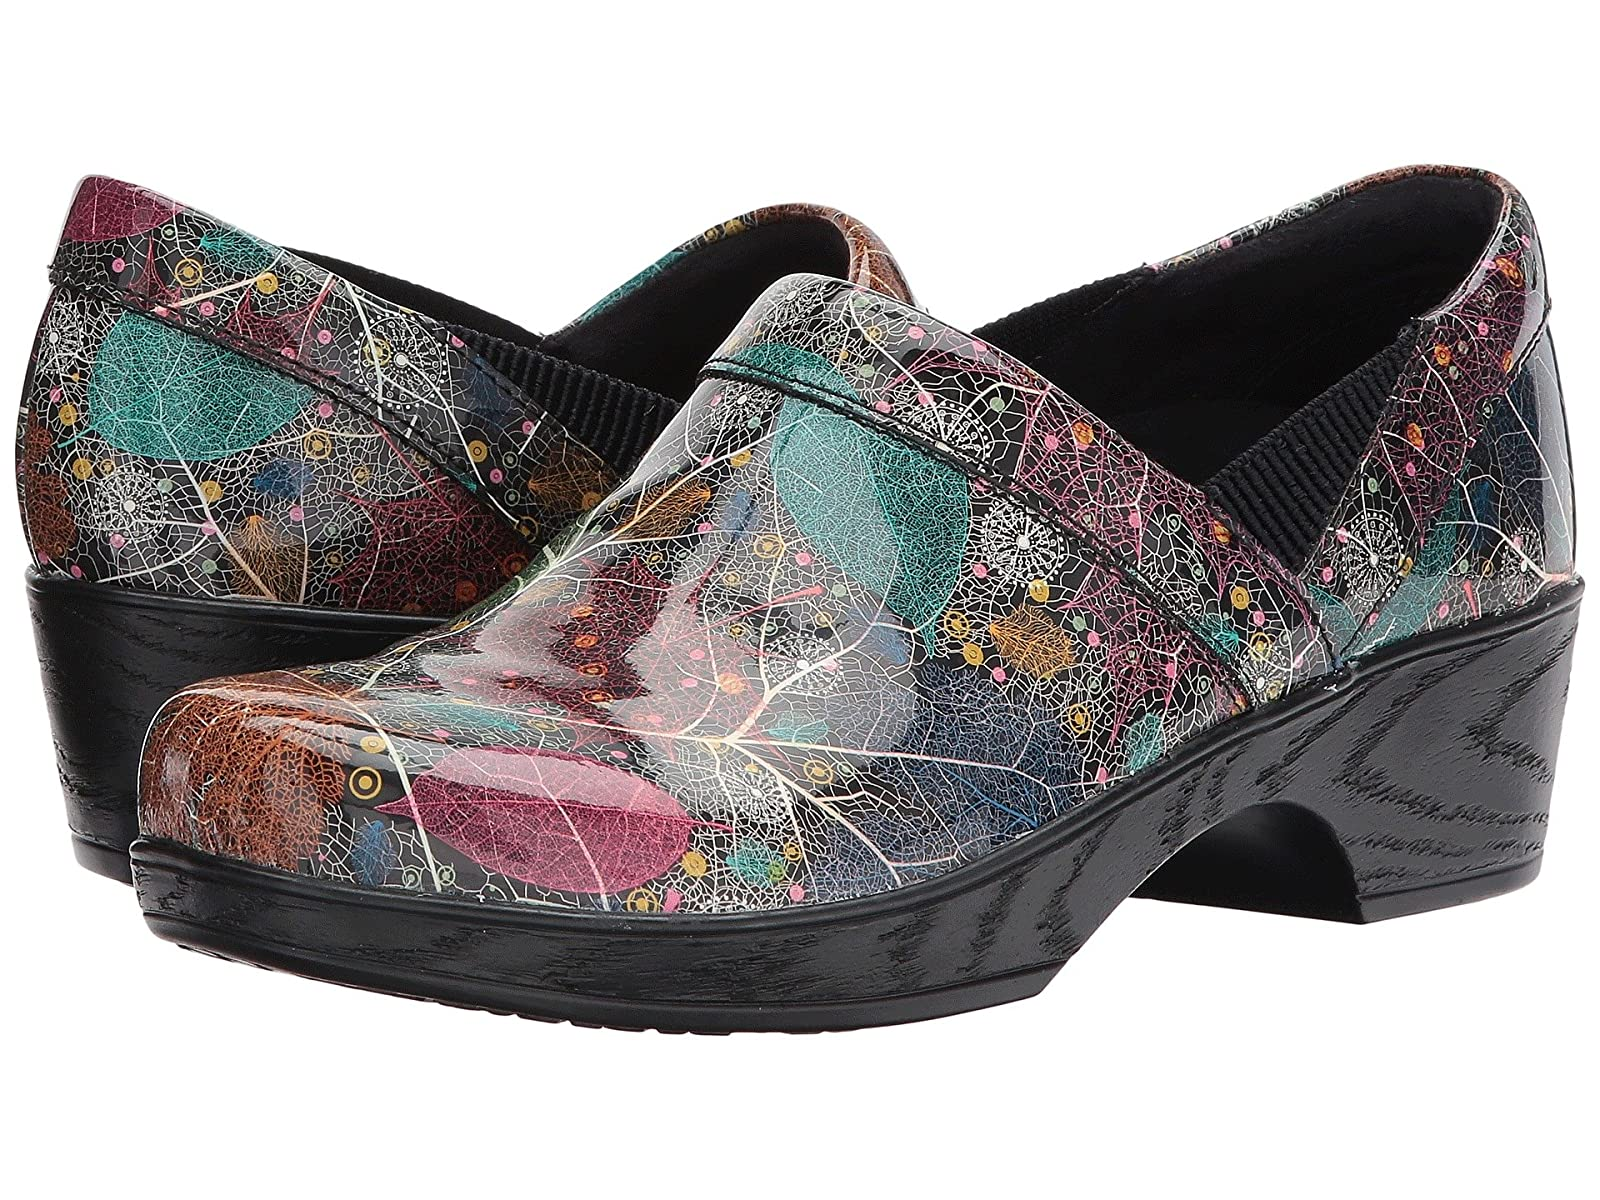 Klogs Footwear PortlandAtmospheric grades have affordable shoes